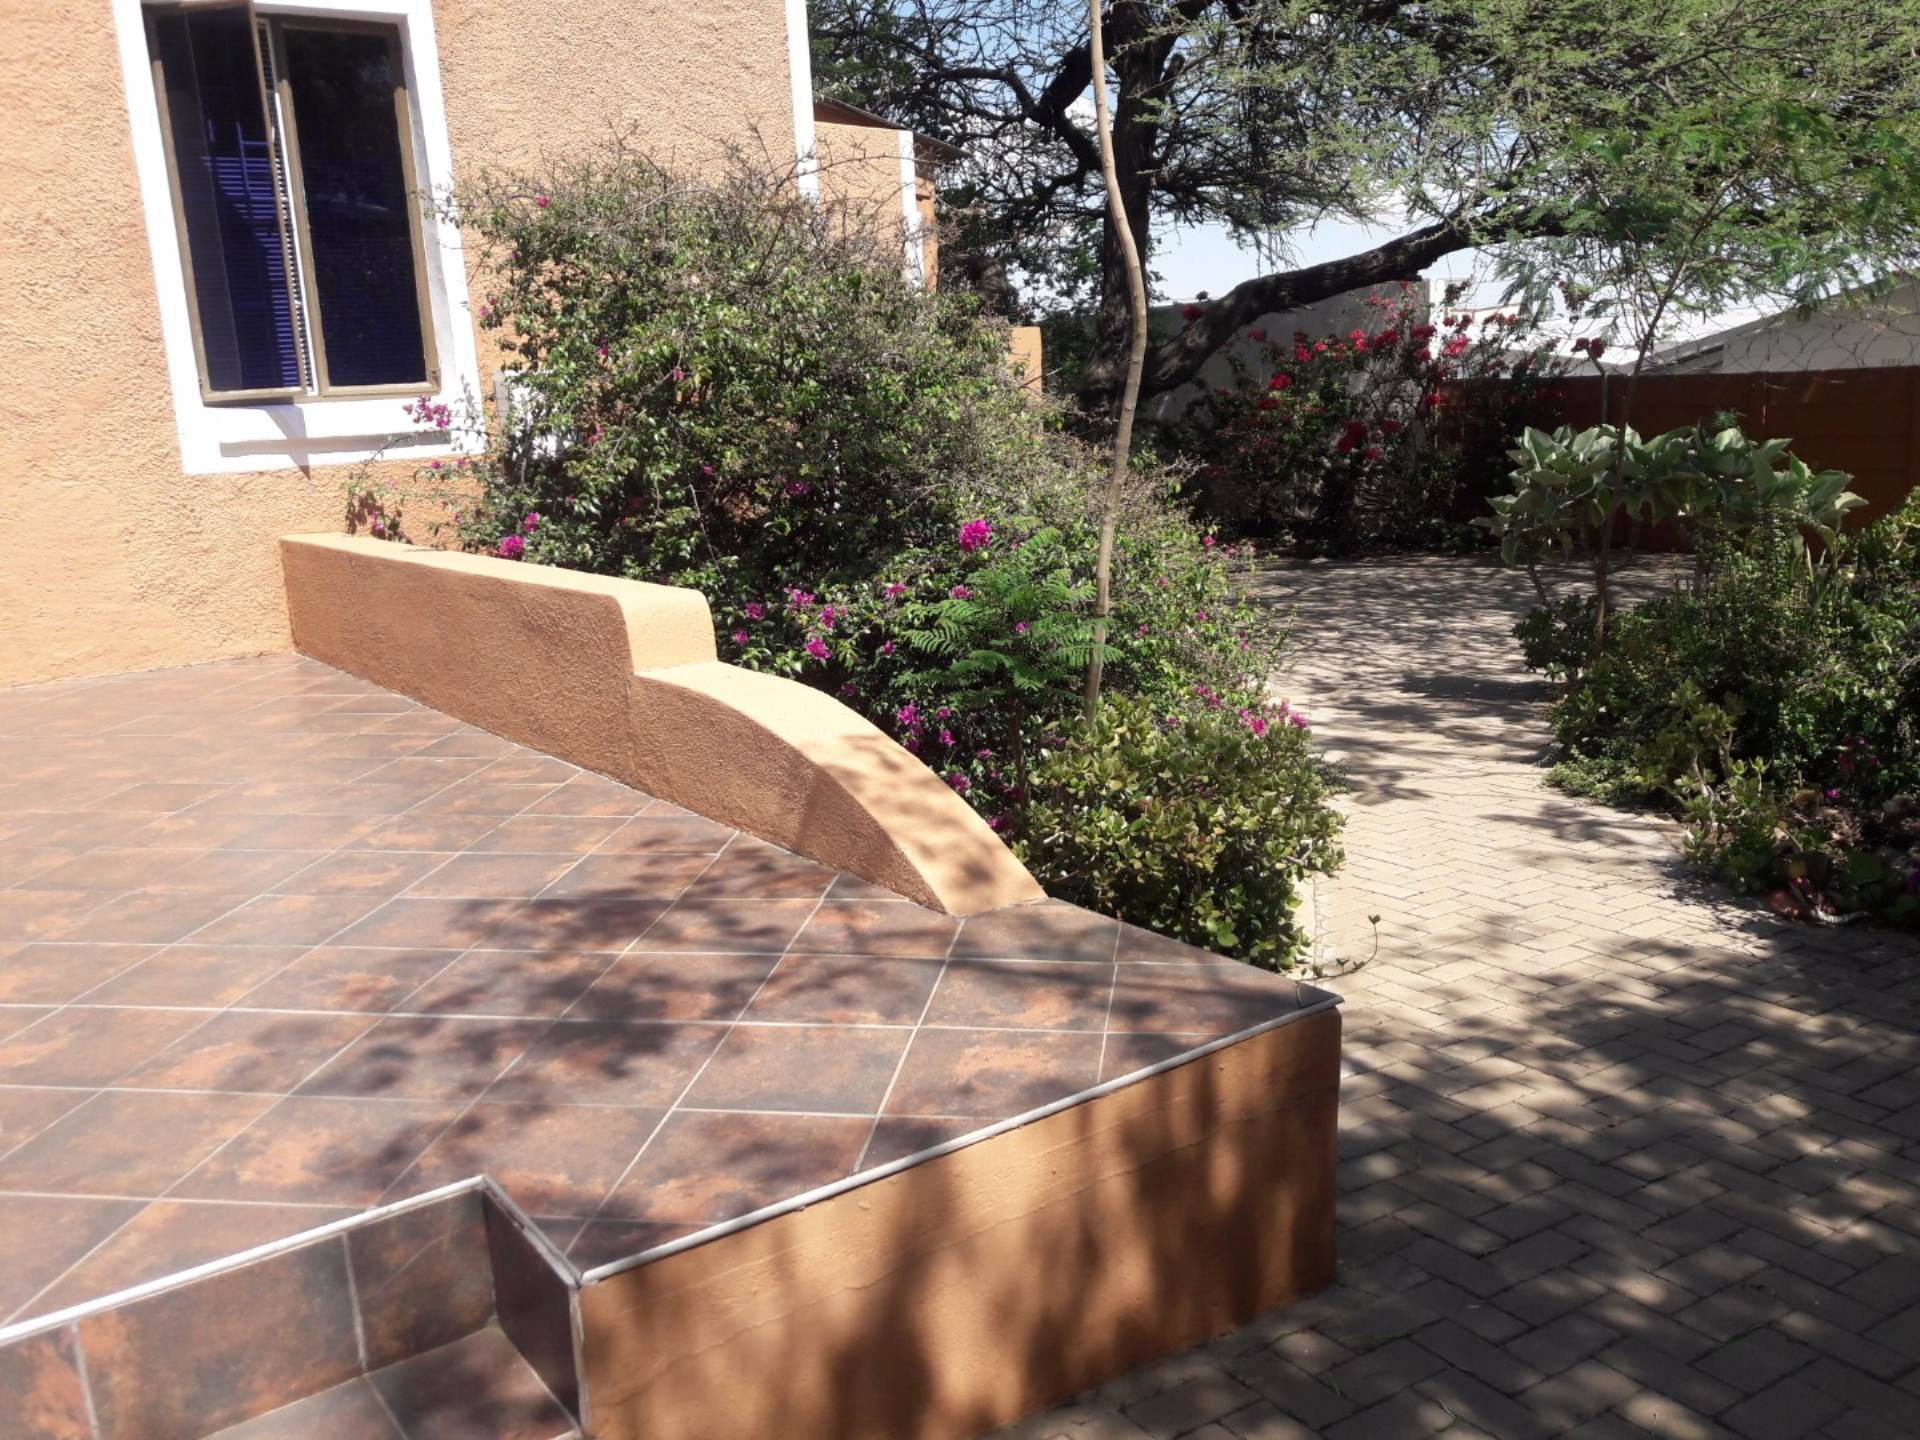 Luxury Landscaping Business for Sale